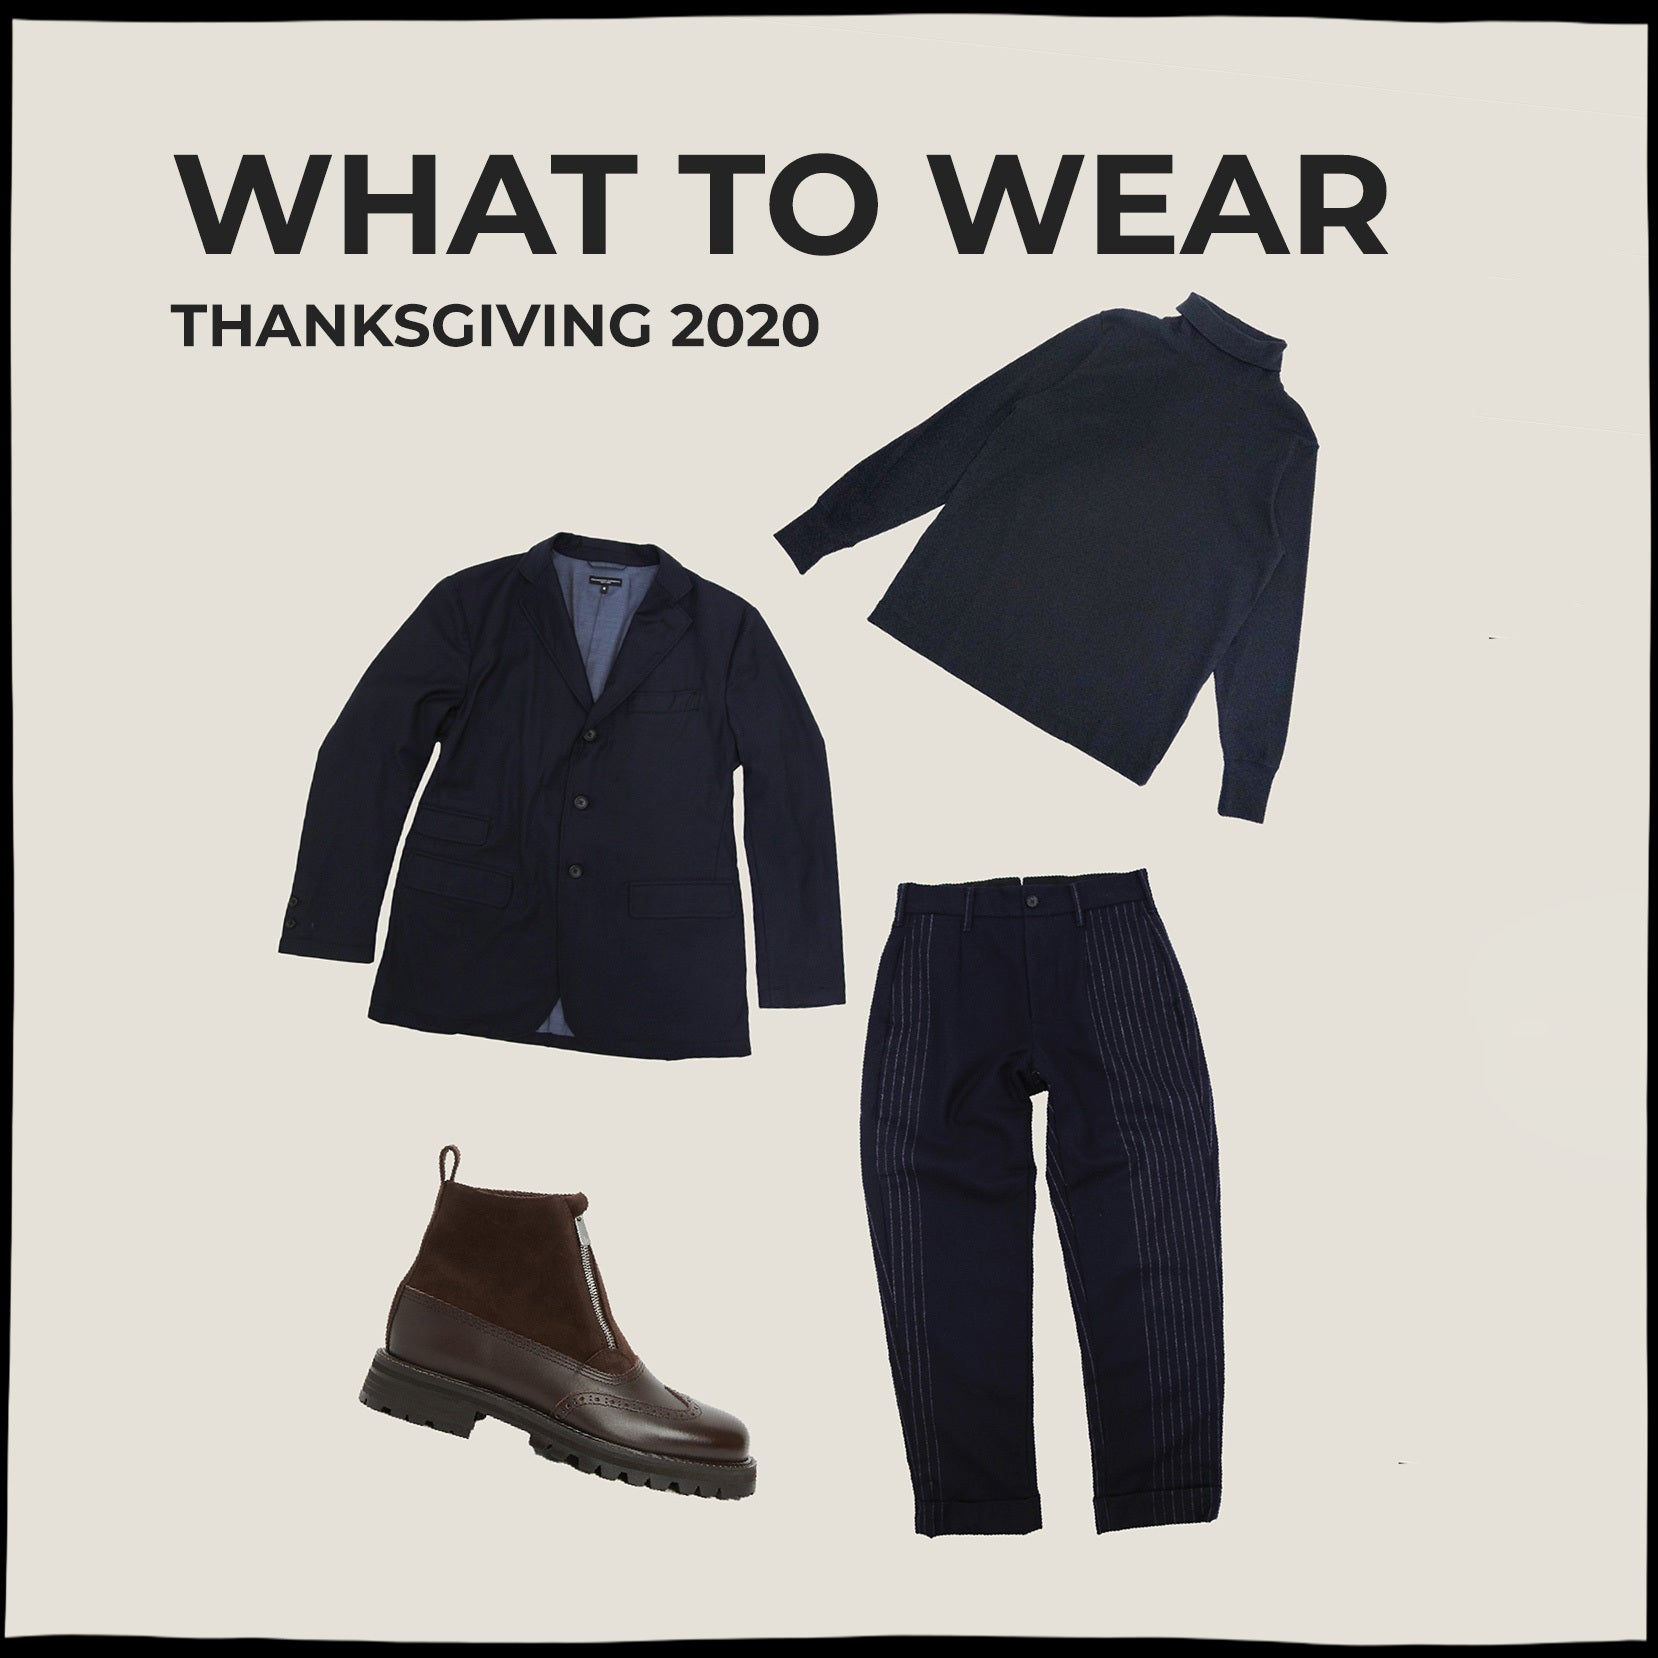 what to wear thanksgiving featuring noma t.d., engineered garments, orslow, hender scheme, kapital japan, visvim, lvc, needles, nanamica, cableami and velva sheen